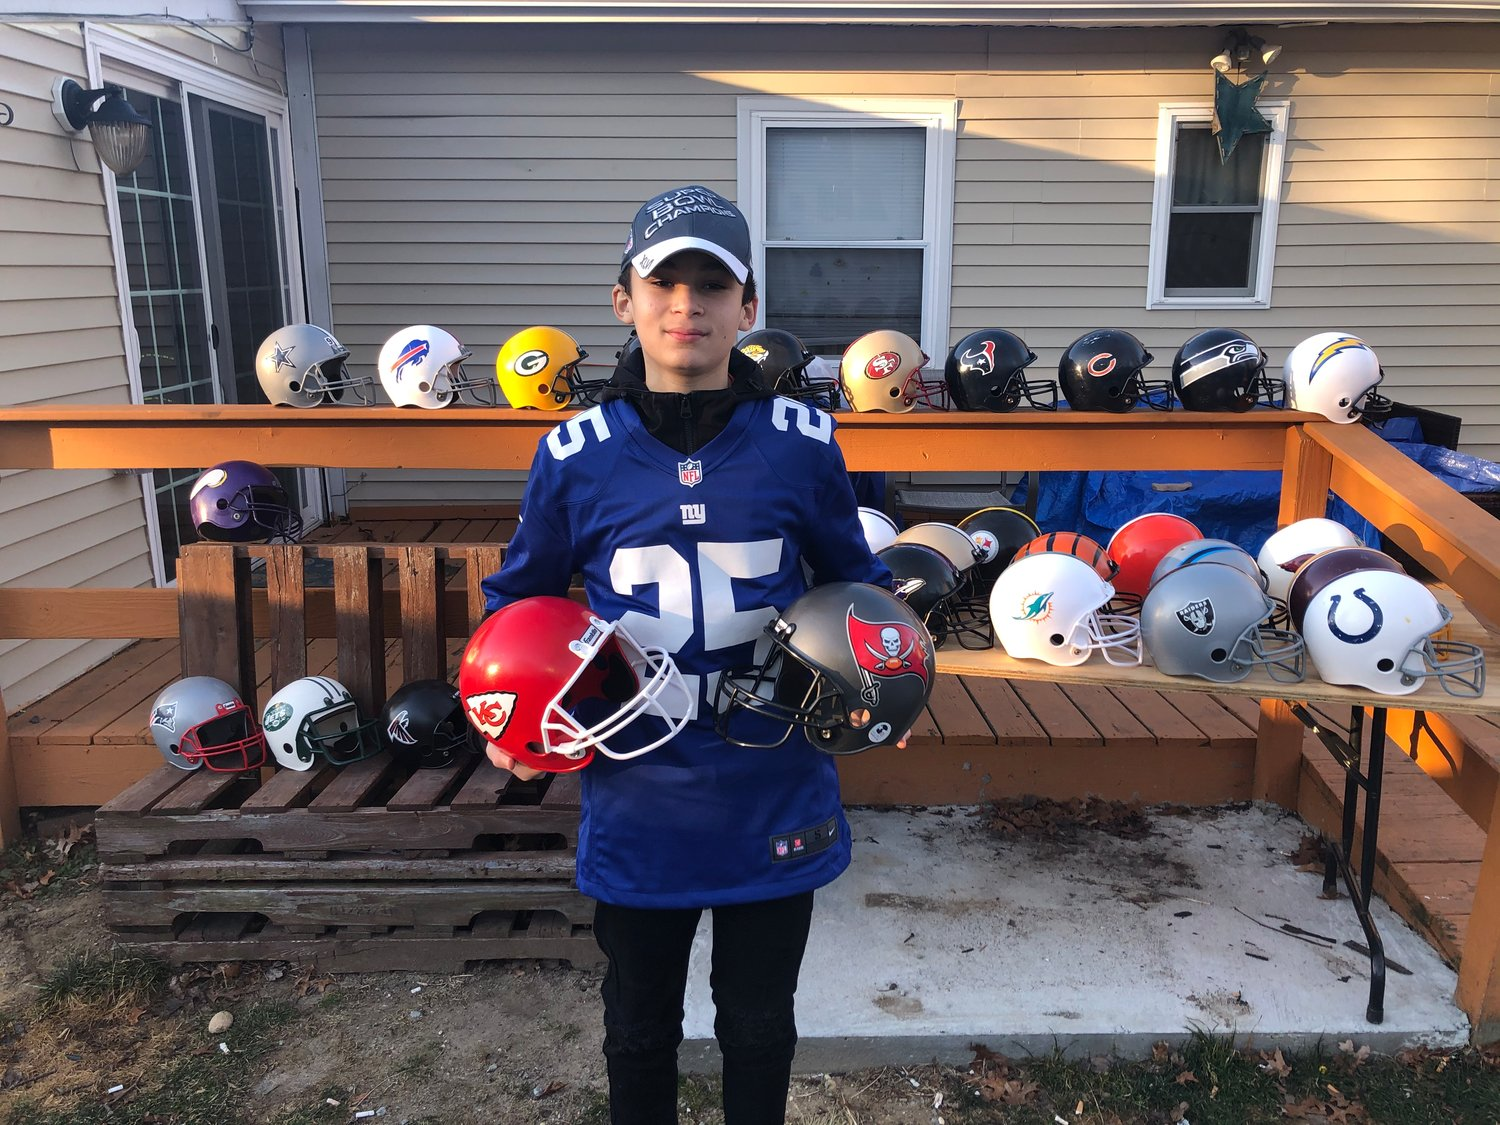 Donovan with his helmet collection holding this year's Super Bowl teams, the Buccaneers and the Chiefs.